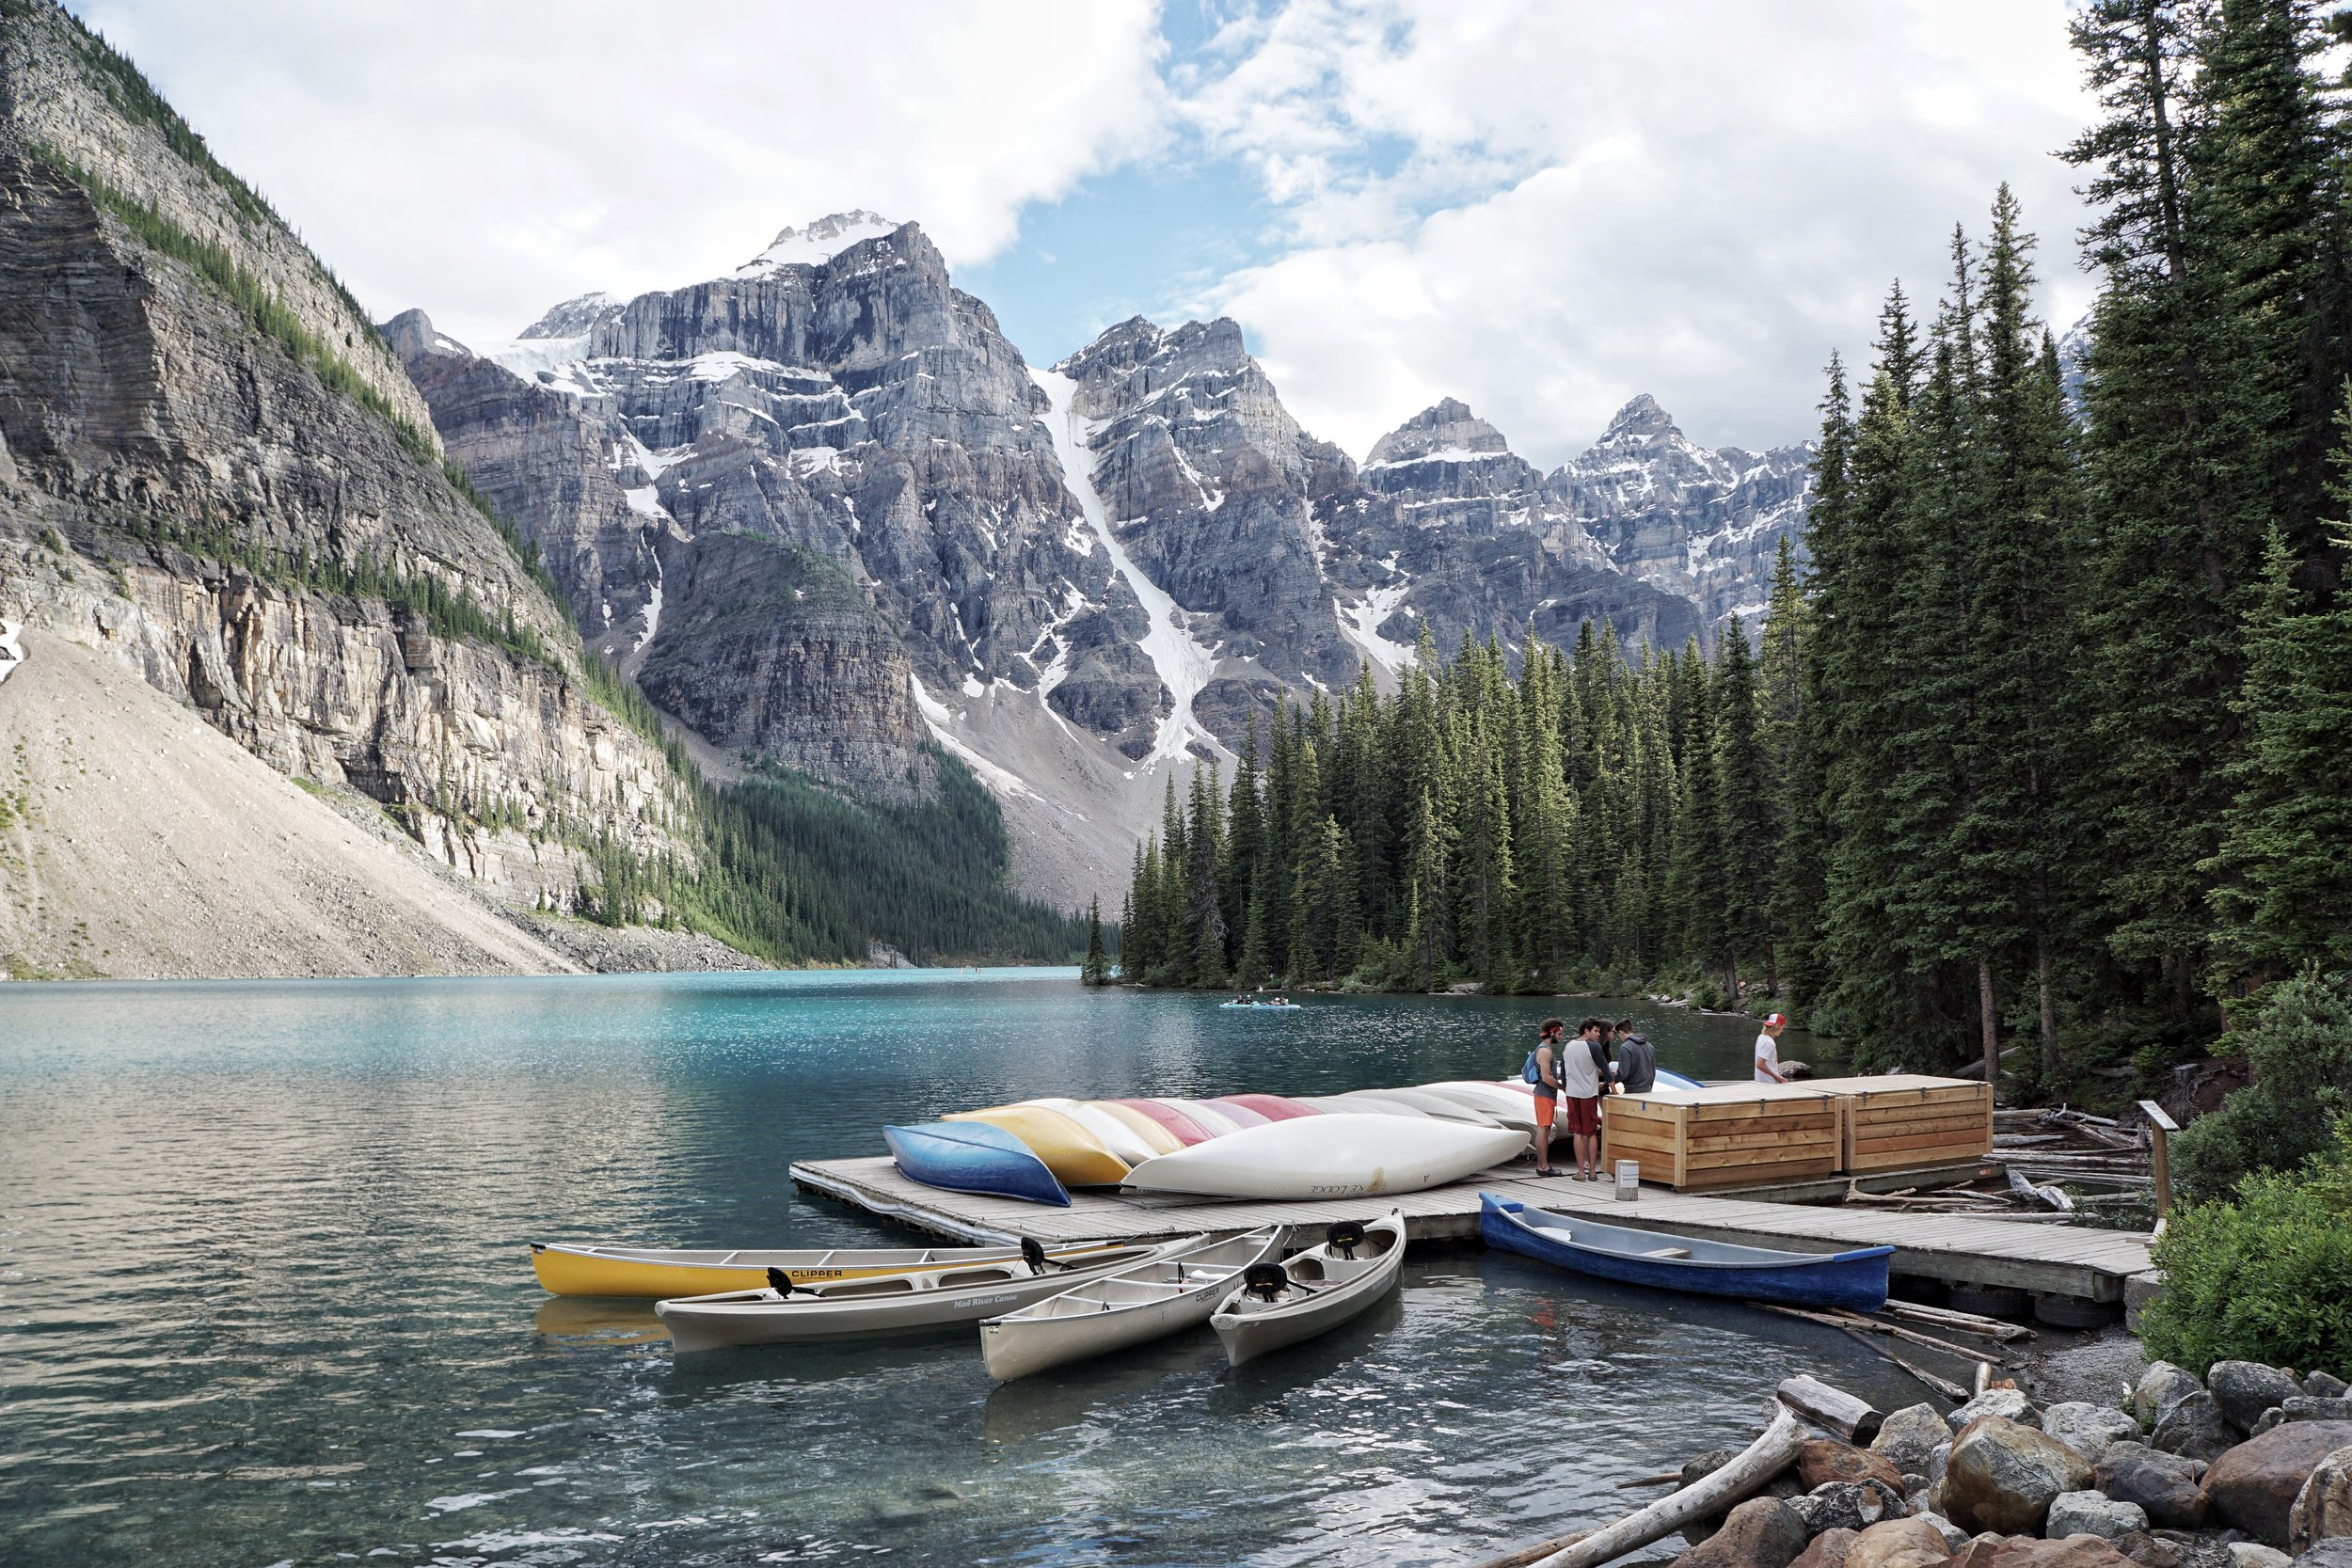 Canada - Hiking blue lagoons with a side of Grizzly Bears